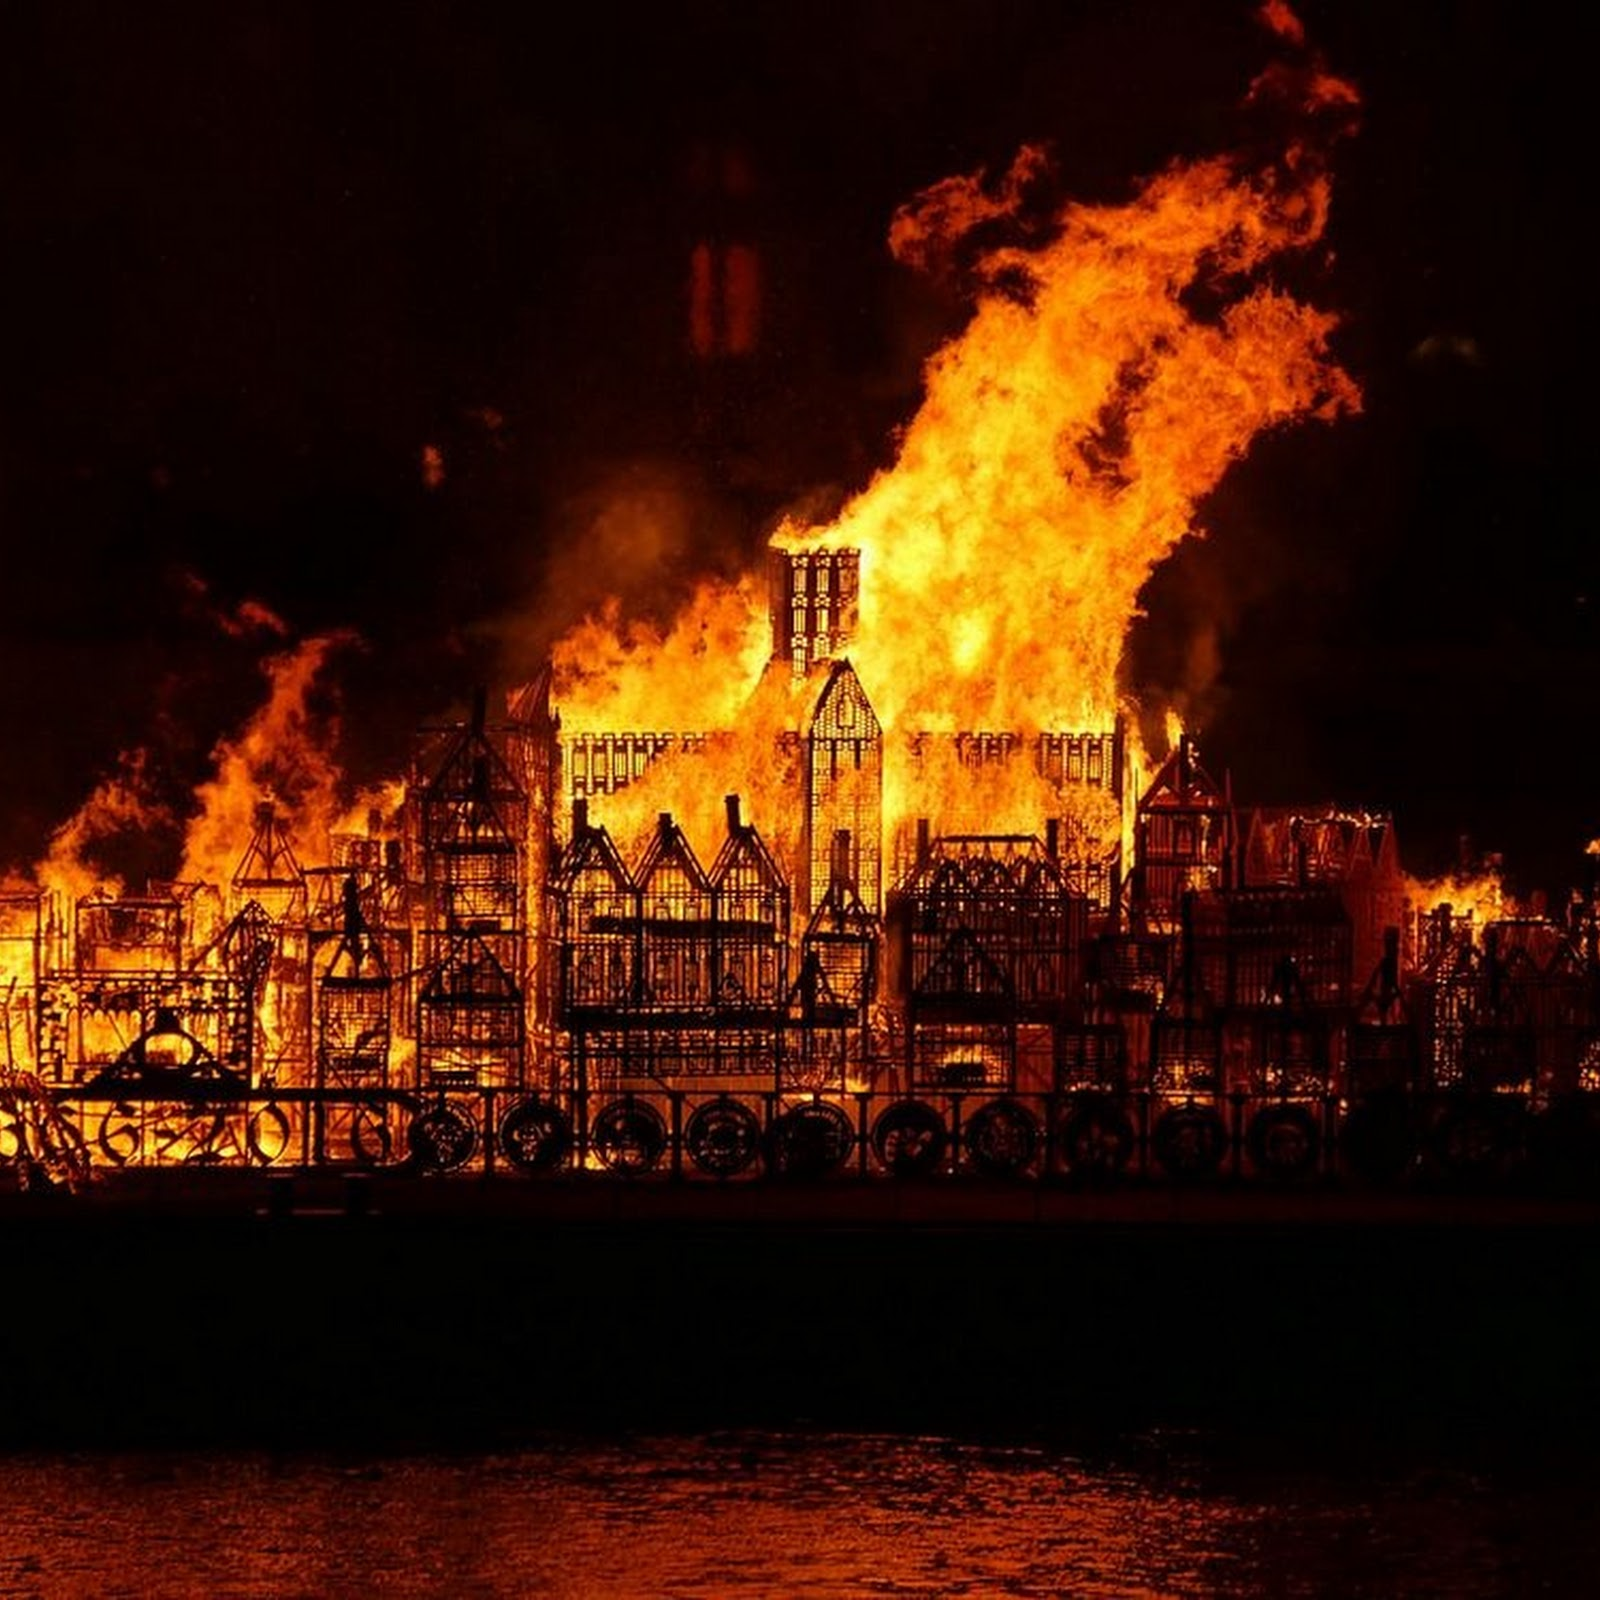 Londoners 'Celebrate' Great Fire By Setting Wooden Model on Fire